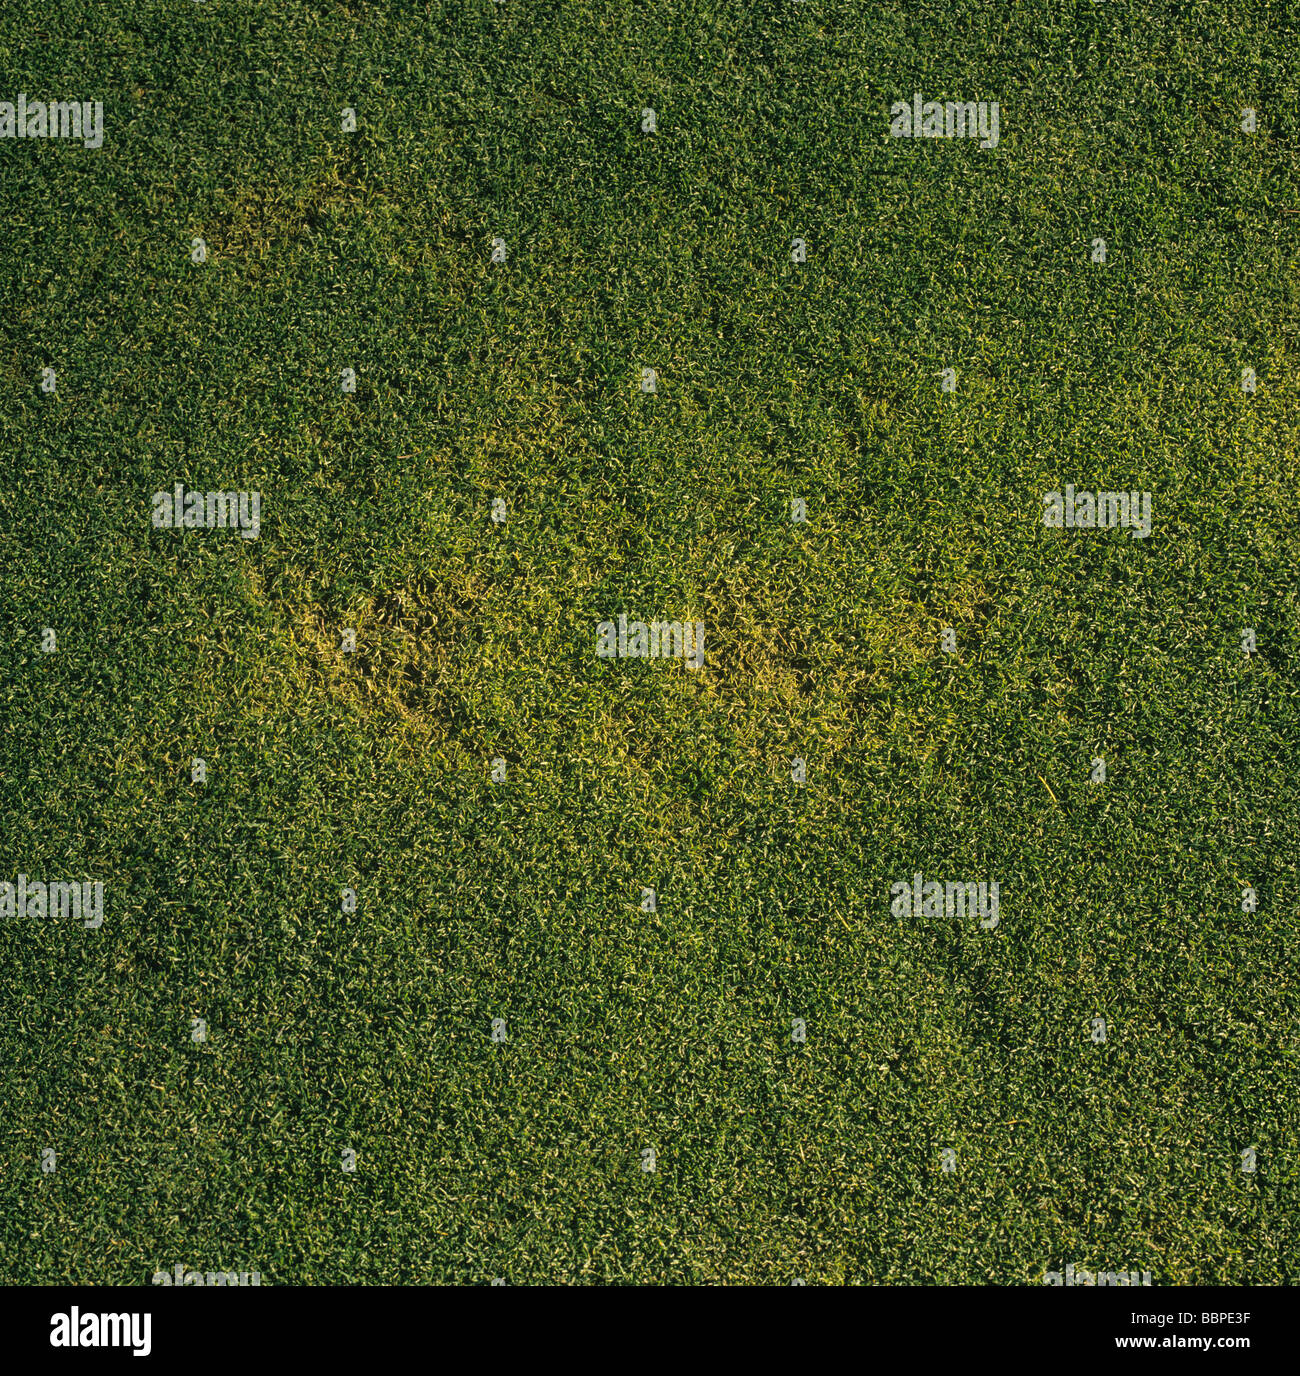 Yellow patch Rhizoctonia cerealis damage to fine grass in a golf green - Stock Image